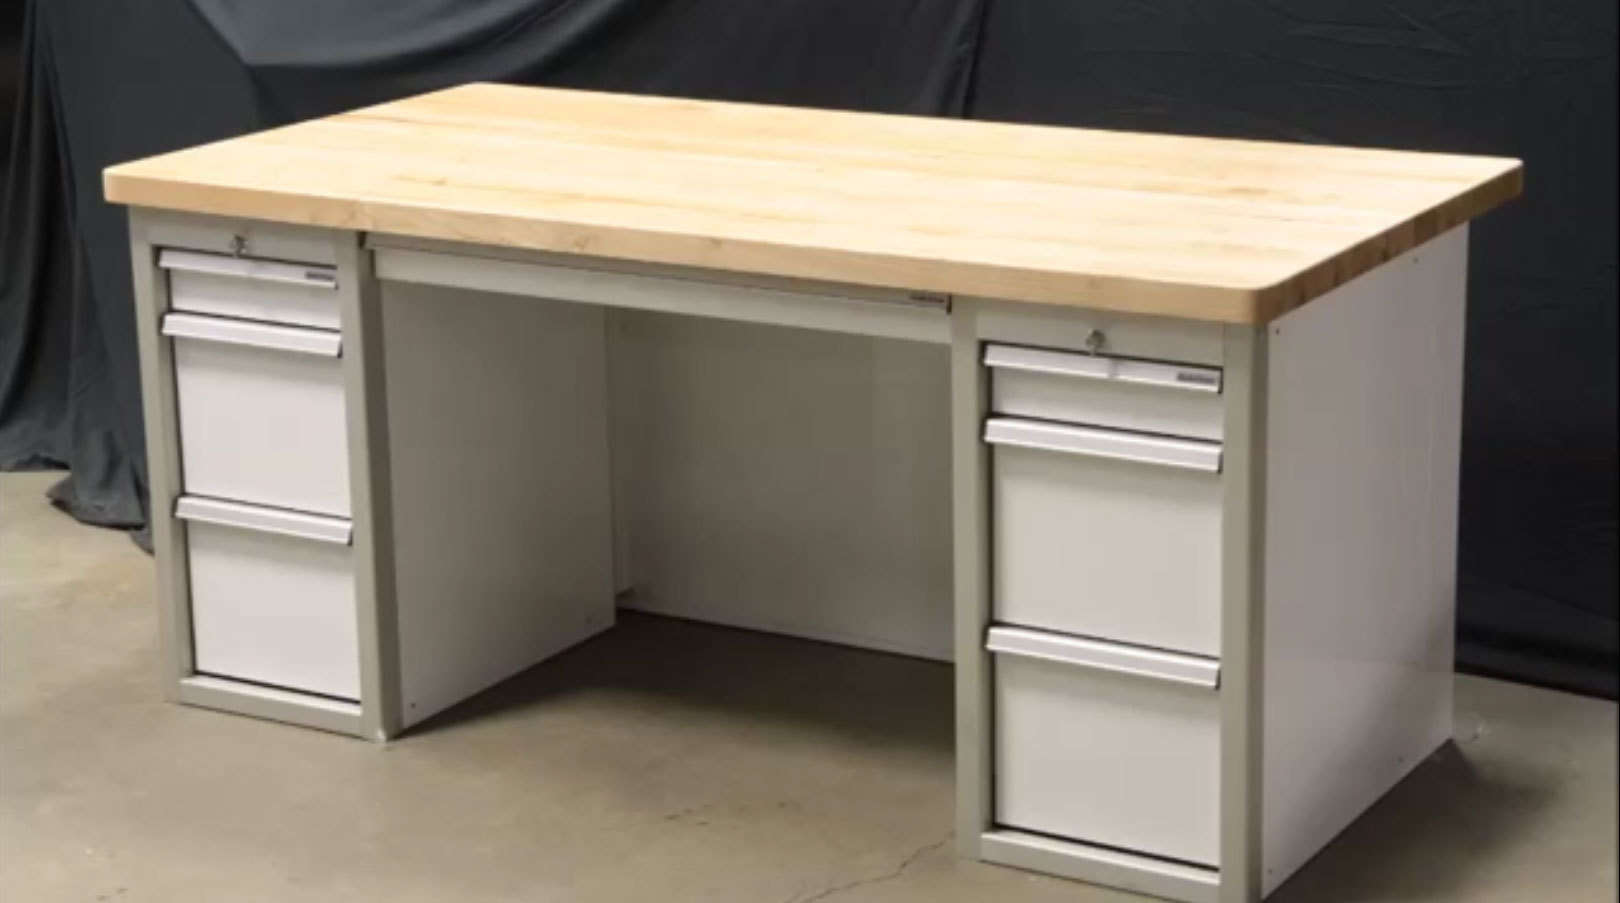 Garage Desk Cabinet Featuring QuikDraw® Video